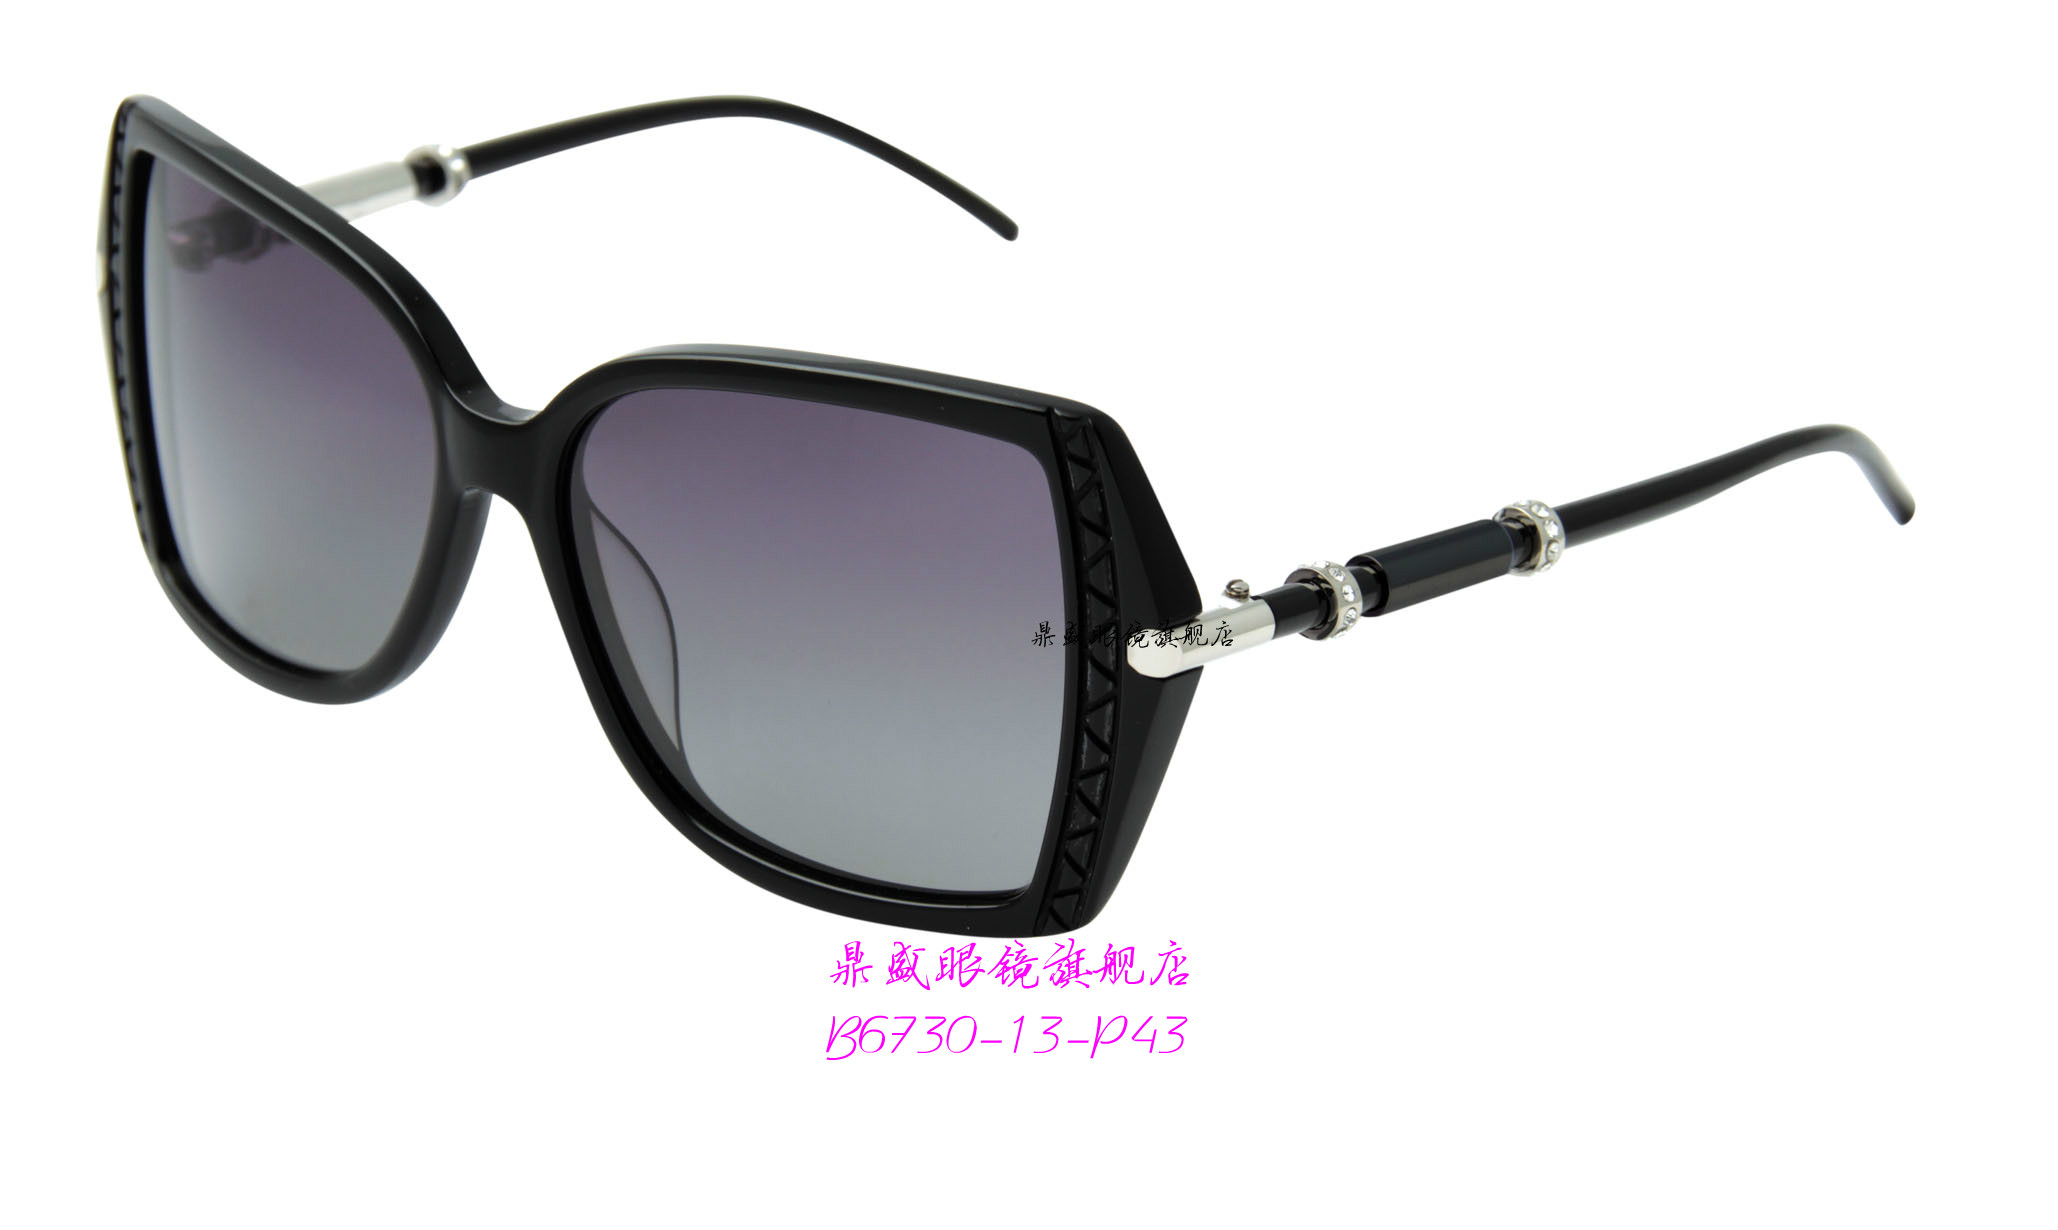 Pasha 2013 sunglasses female sunglasses pasadena big box fashion star style b6730(China (Mainland))